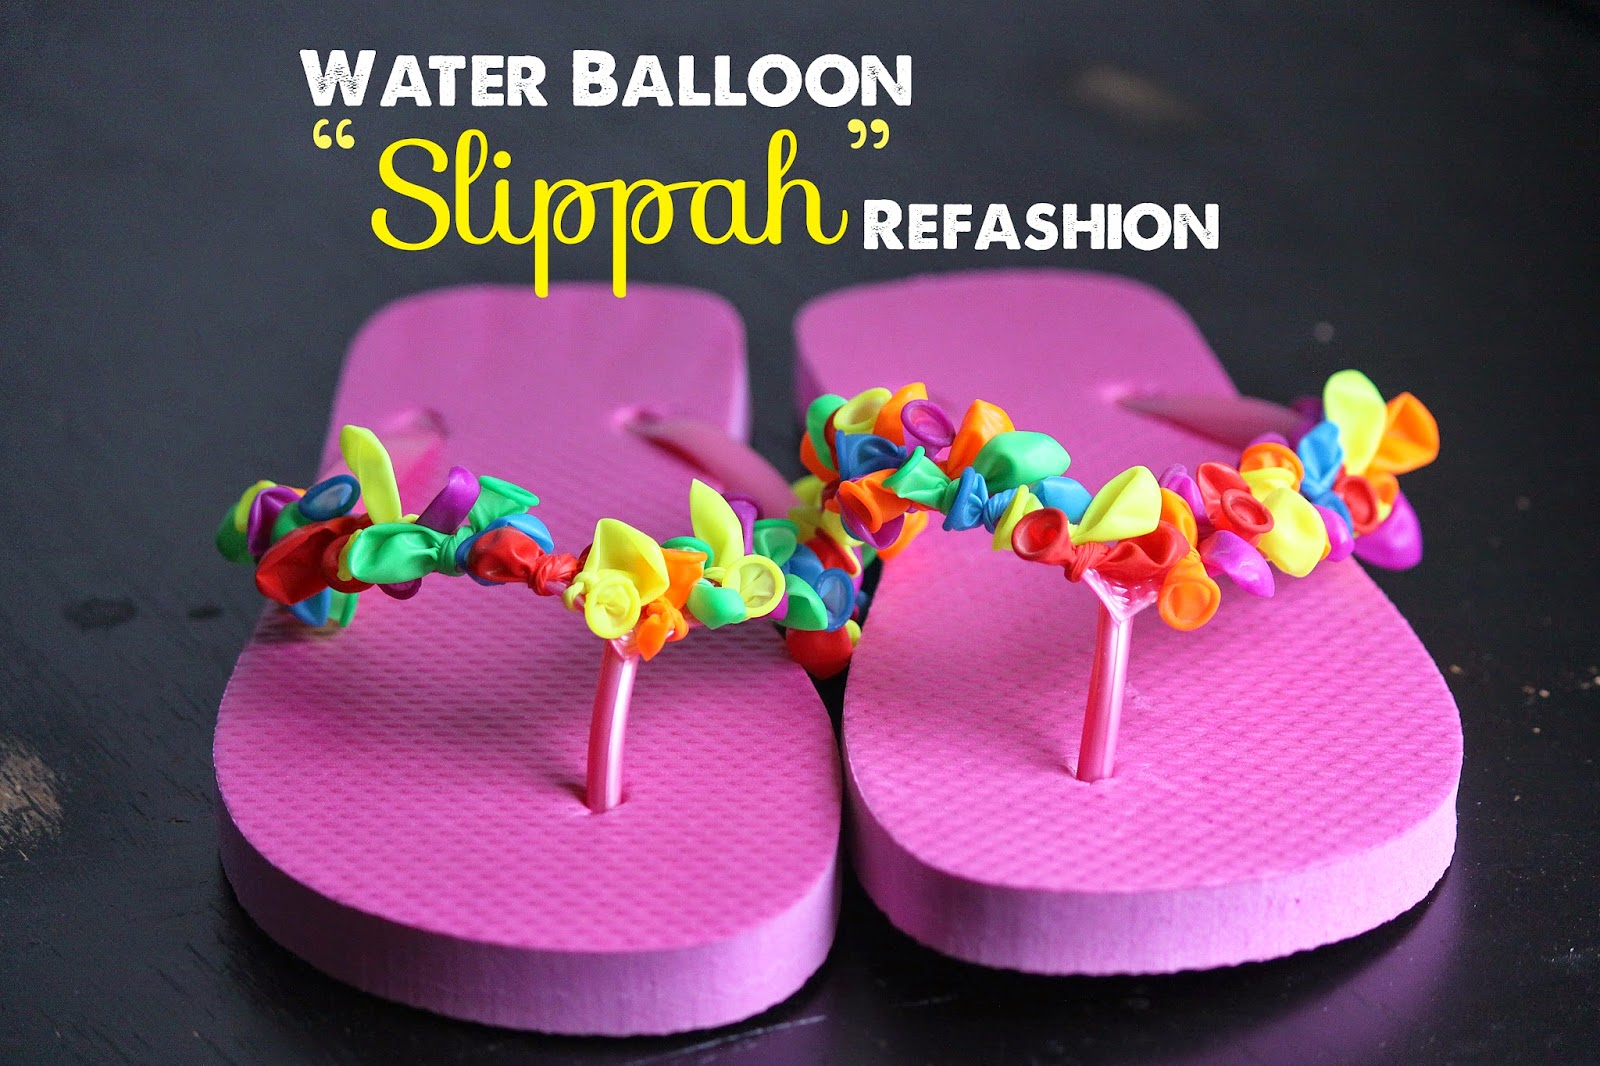 Water Balloon Flip Flop Refashion